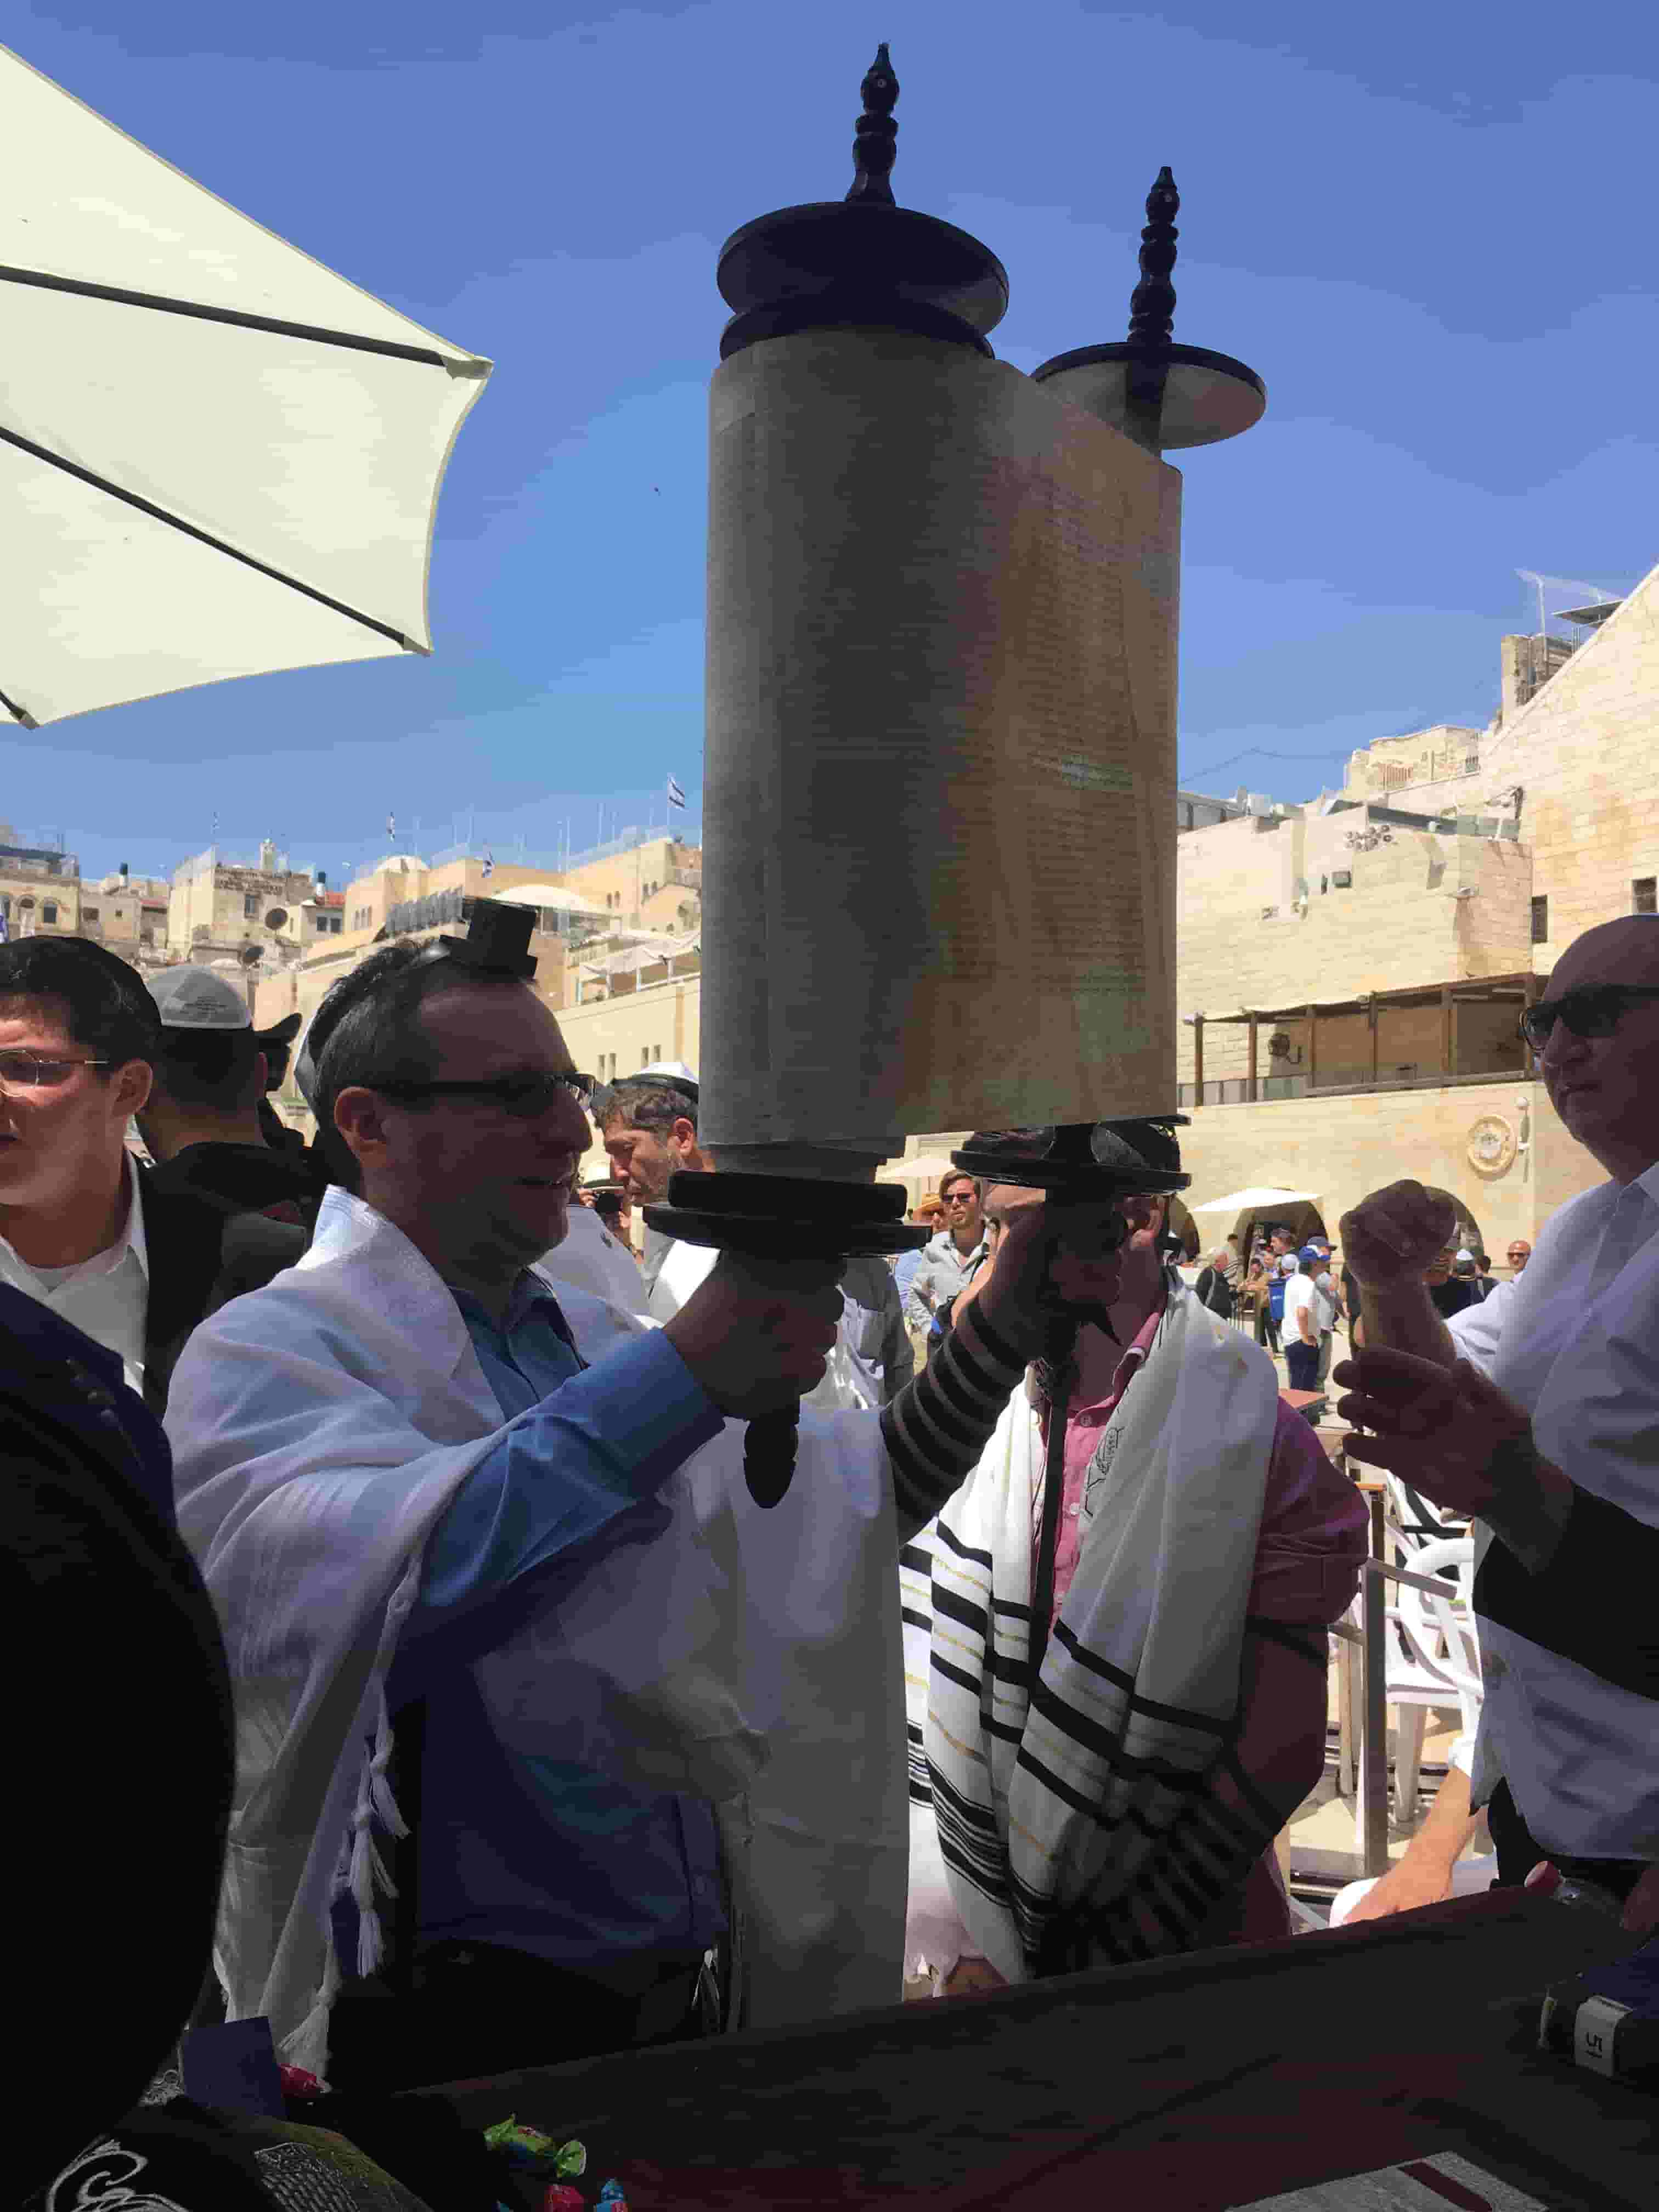 Top 10 Bar Mitzvah activities in Israel